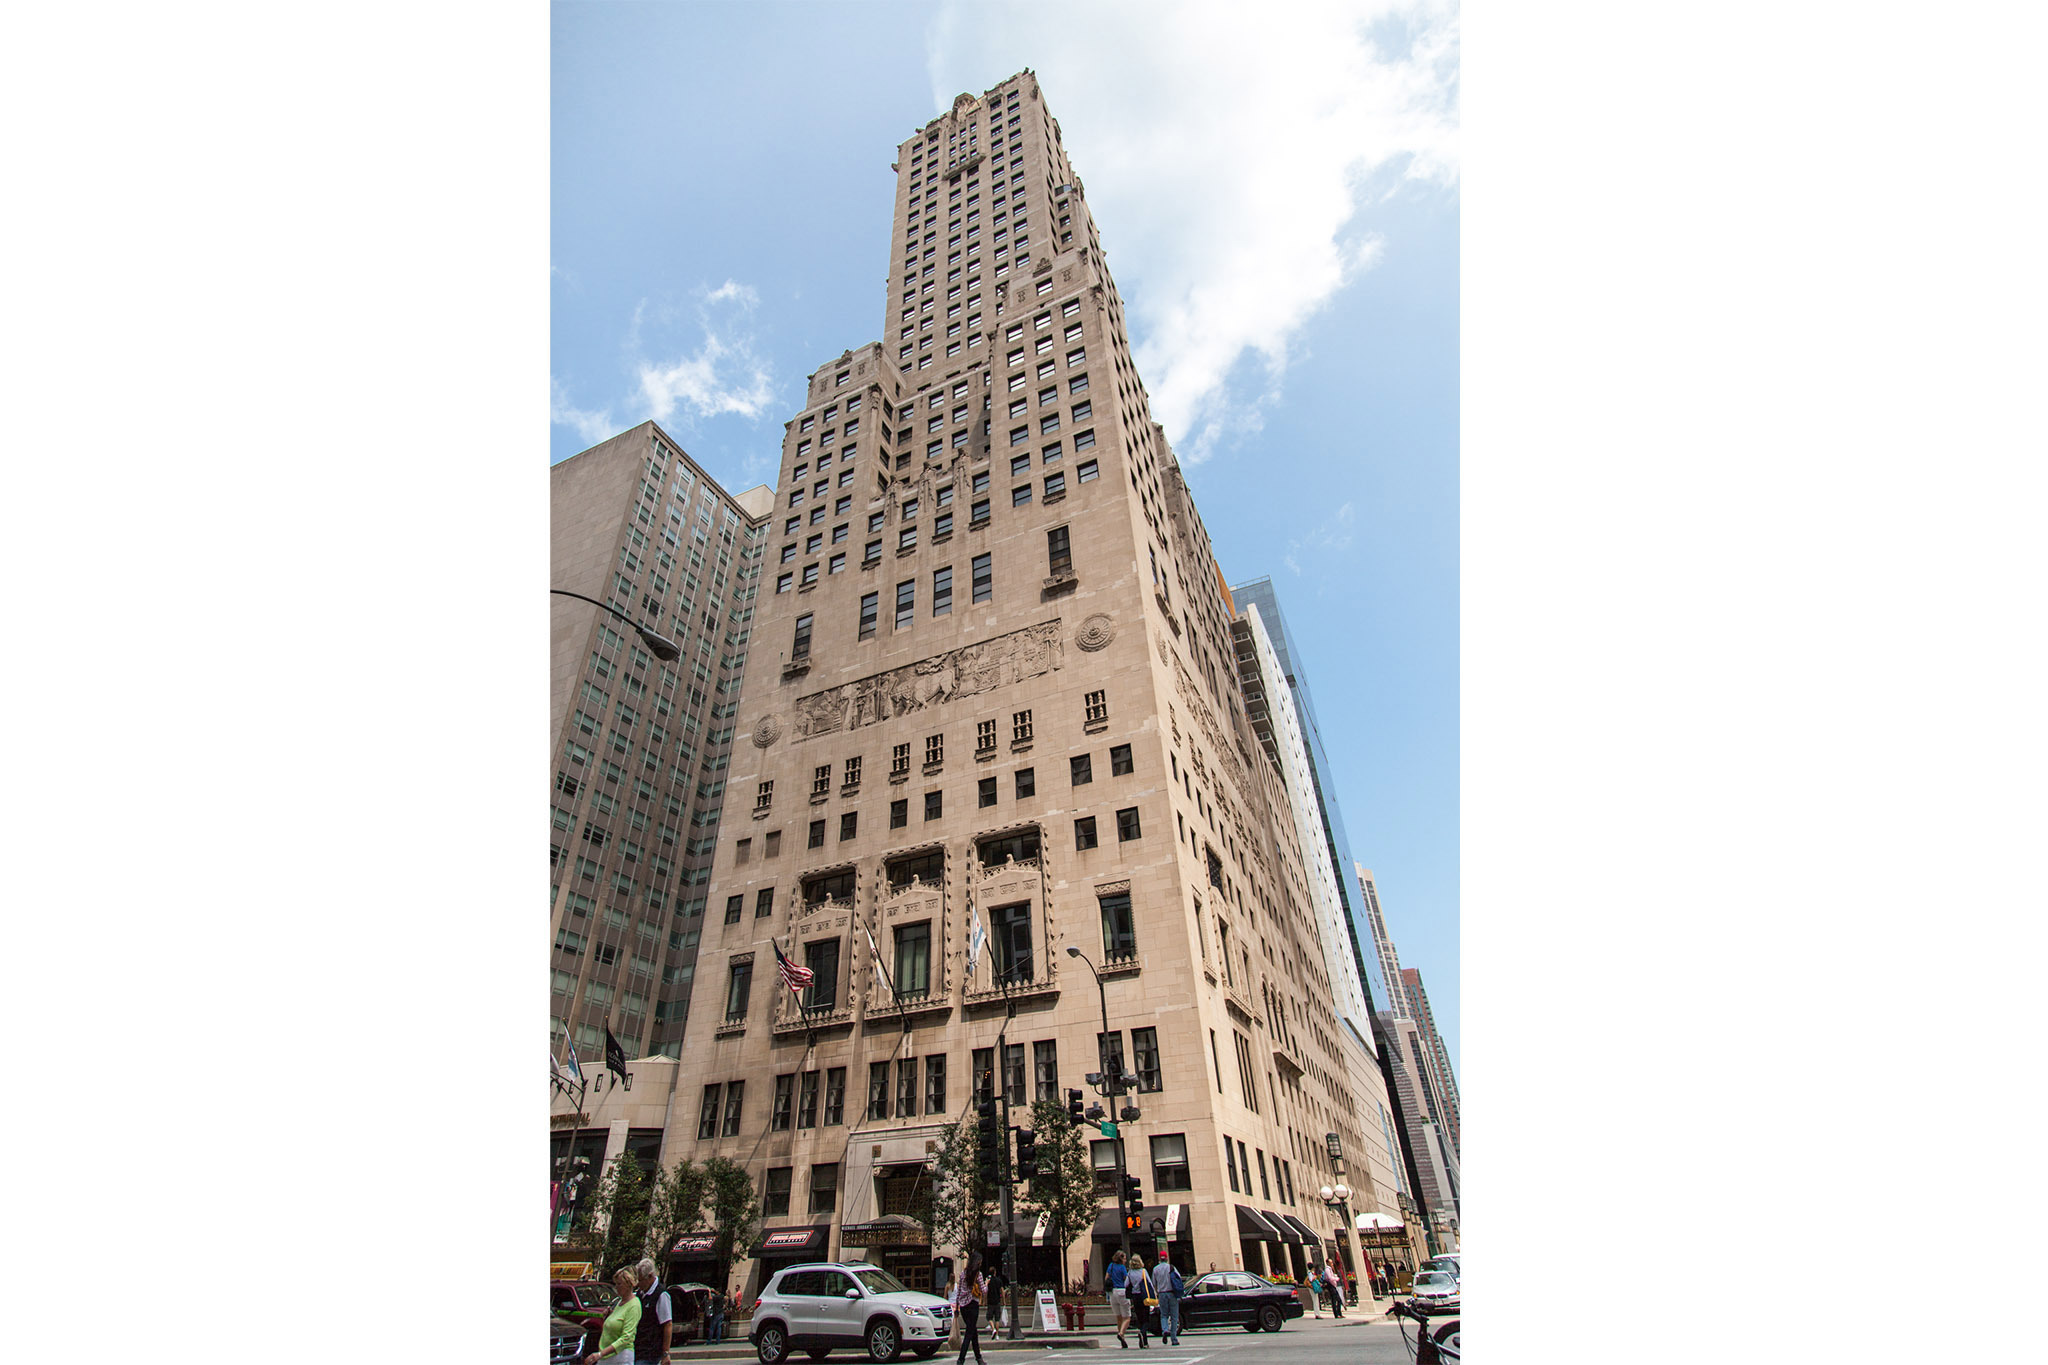 Hotel InterContinental, 505 N Michigan Ave